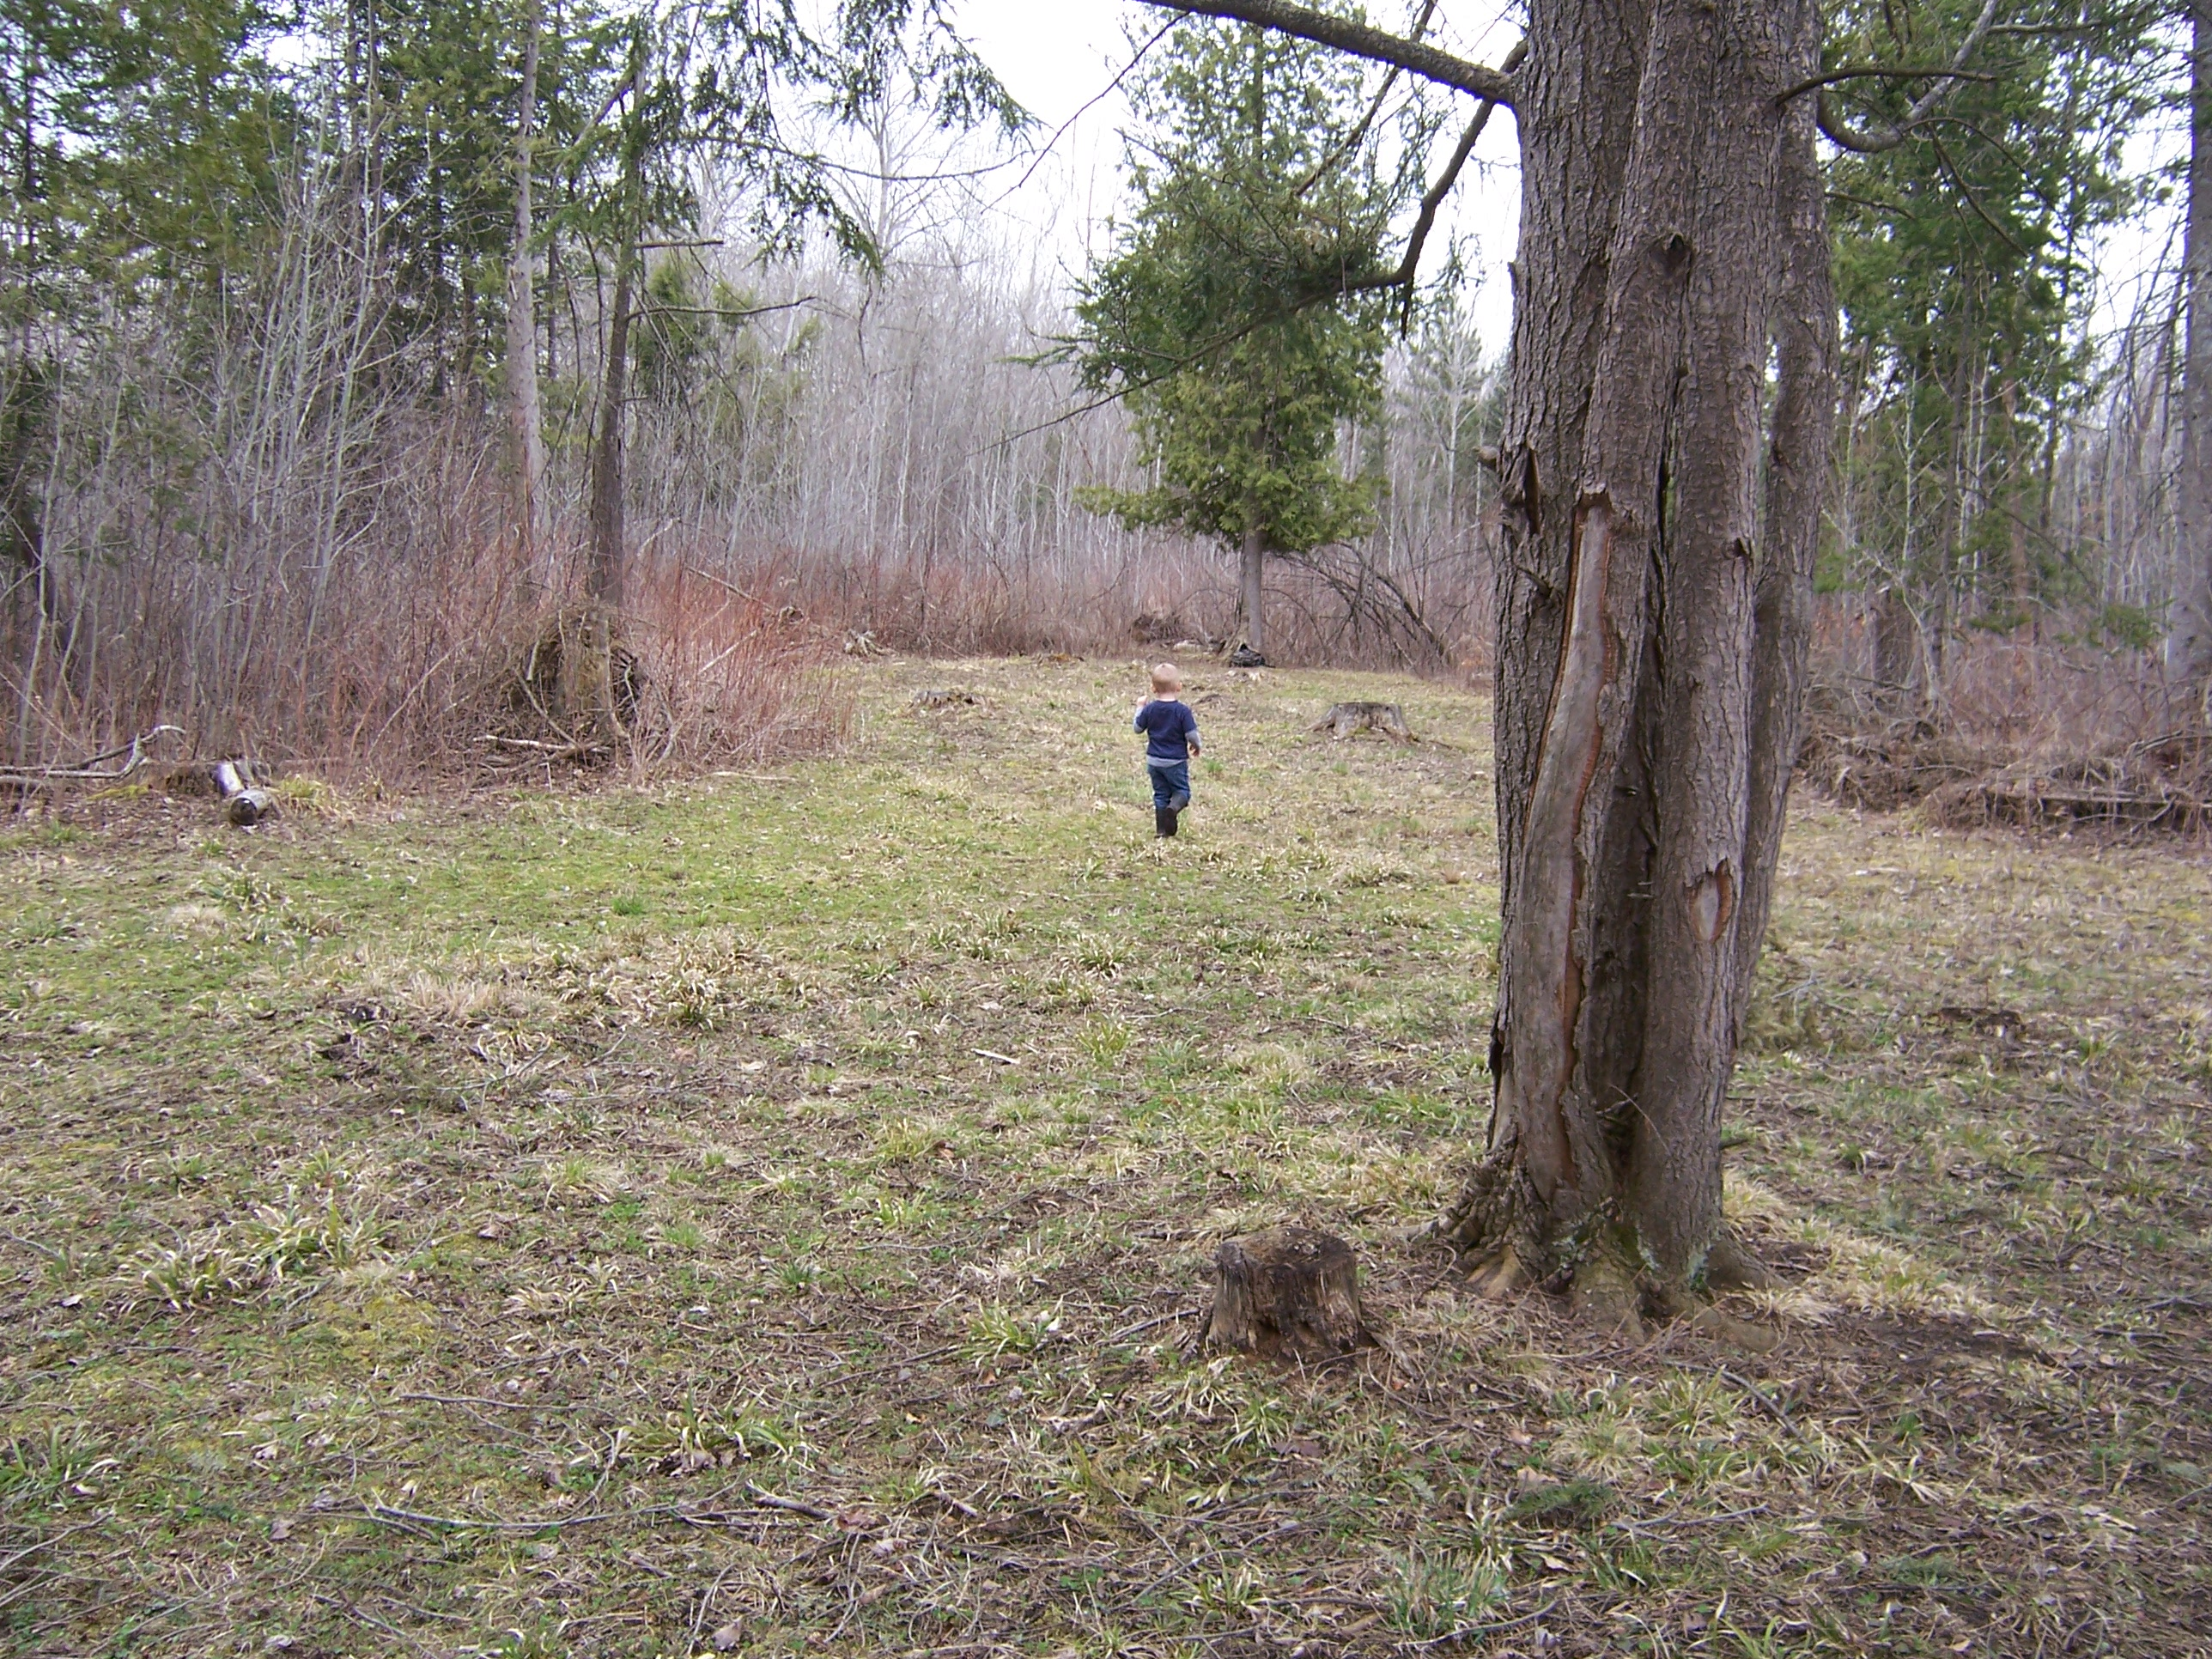 My son inspects our small clover plot to see how Dad's frost seeding efforts worked out.